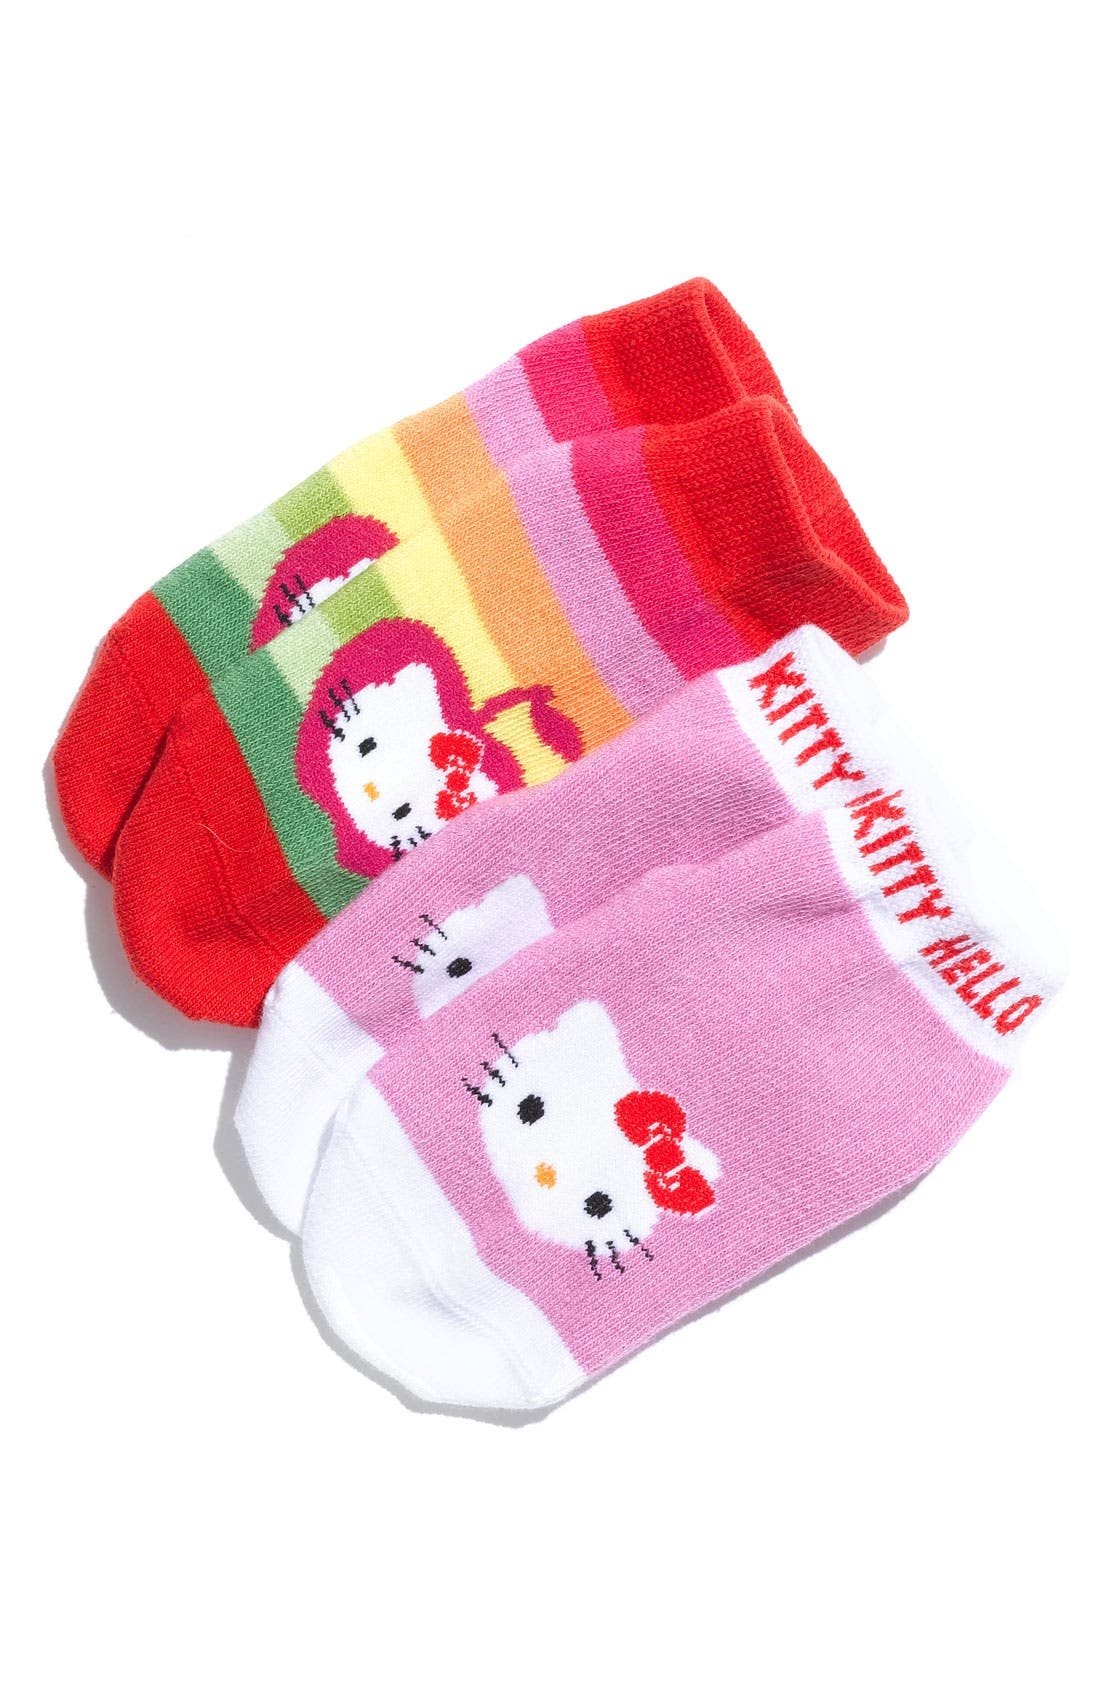 Main Image - BabyLegs® 'Hello Kitty® Apples and Bows' Socks (2-Pack) (Infant, Toddler & Little Girls)